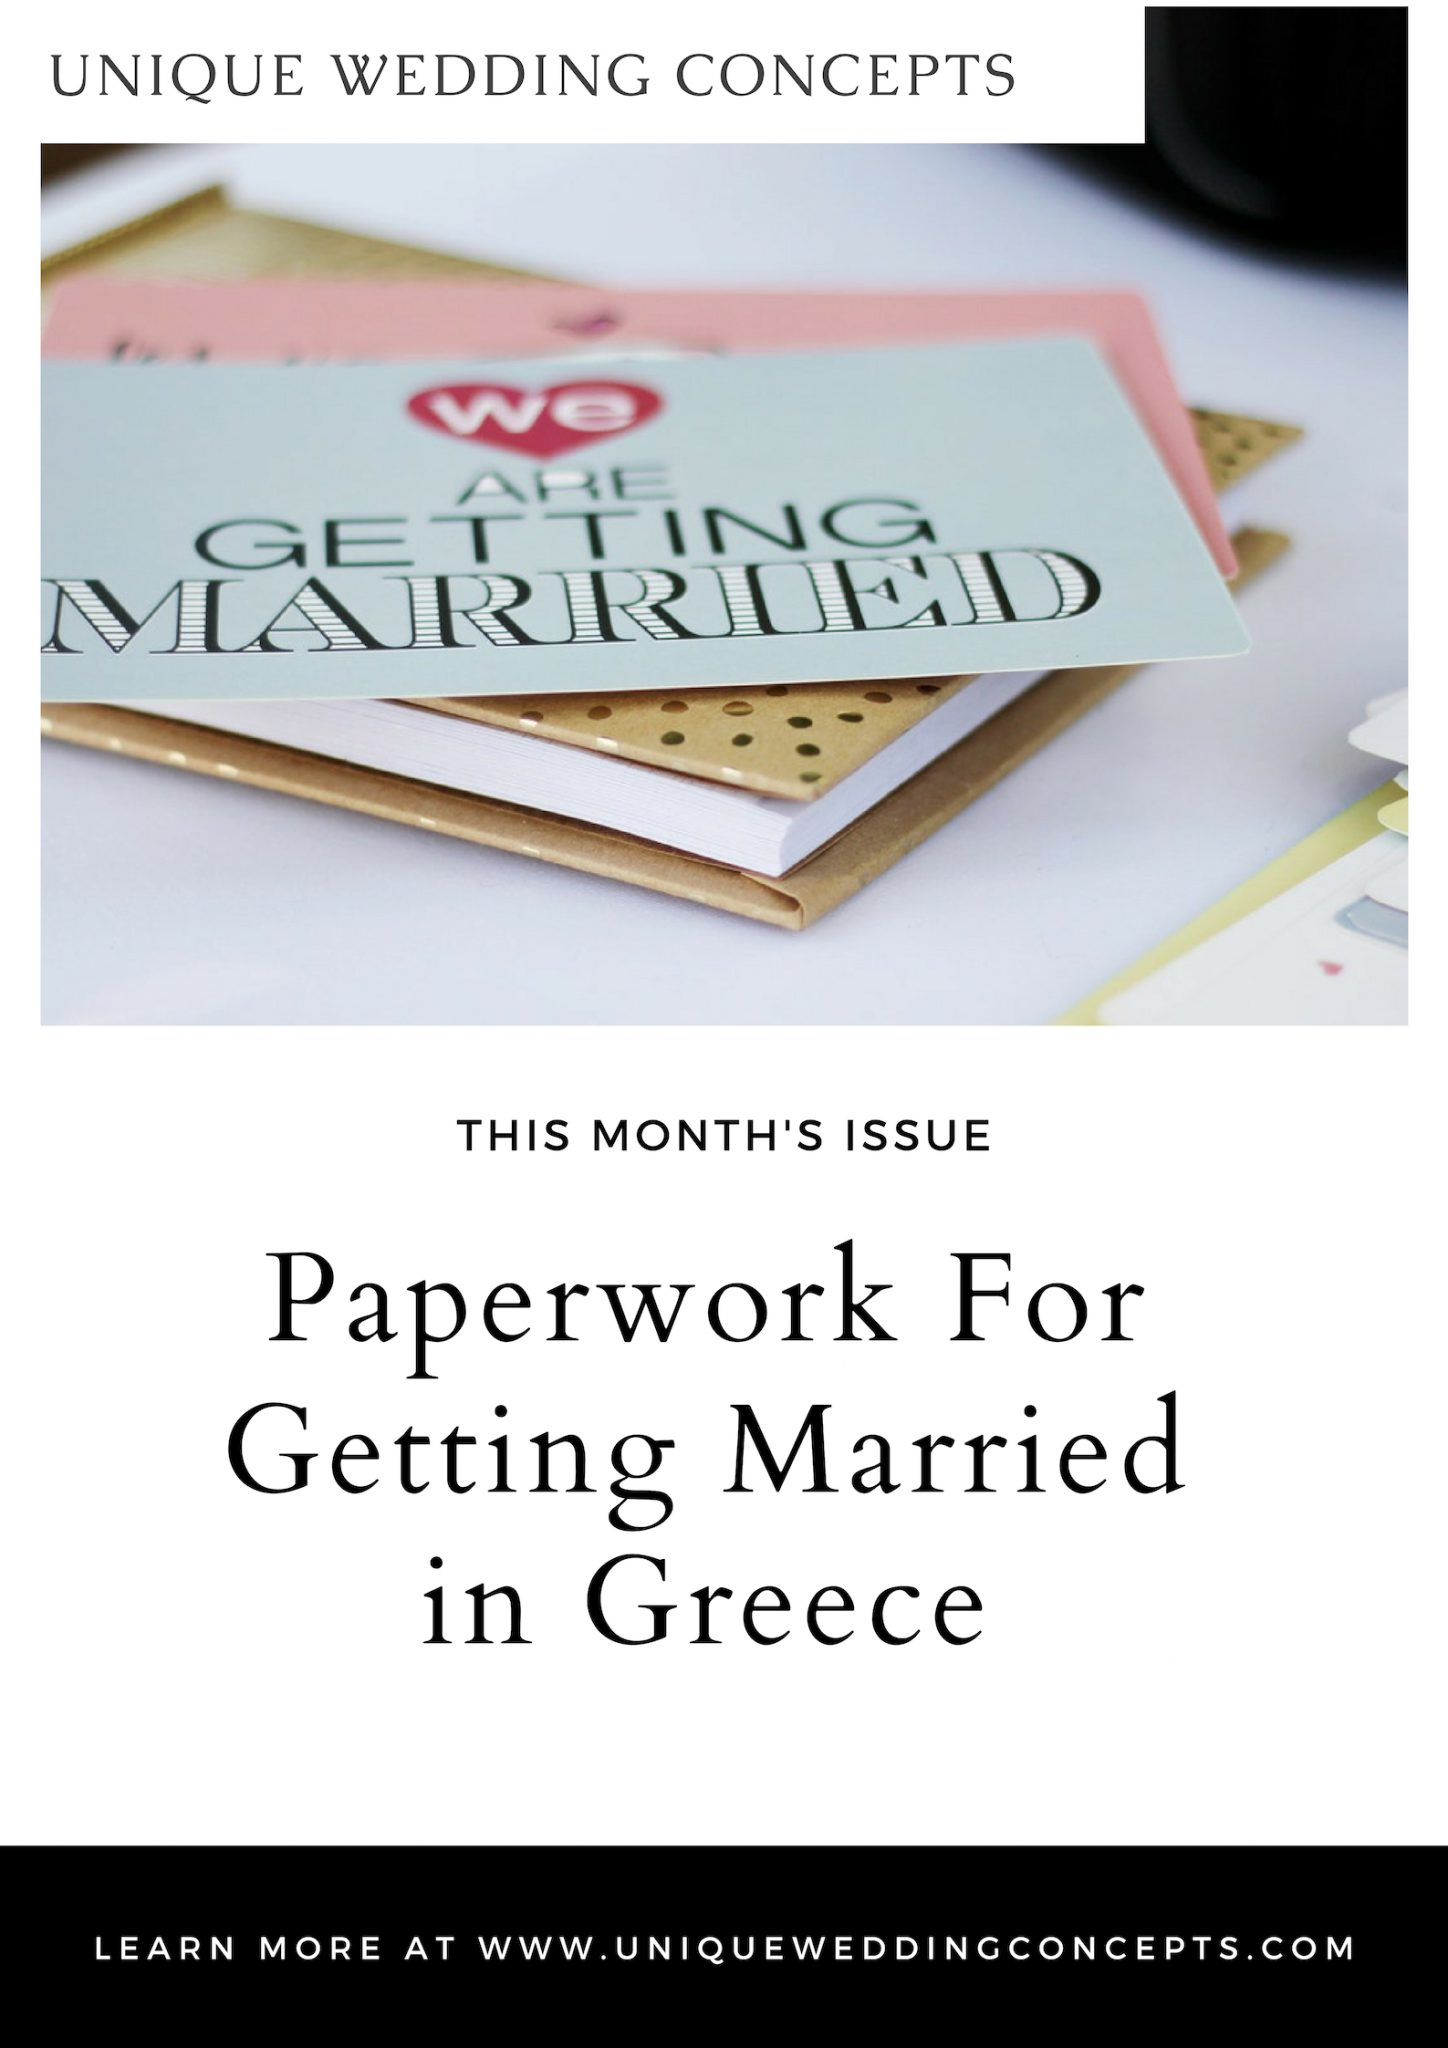 Paperwork for getting married in Greece Unique Wedding Concepts